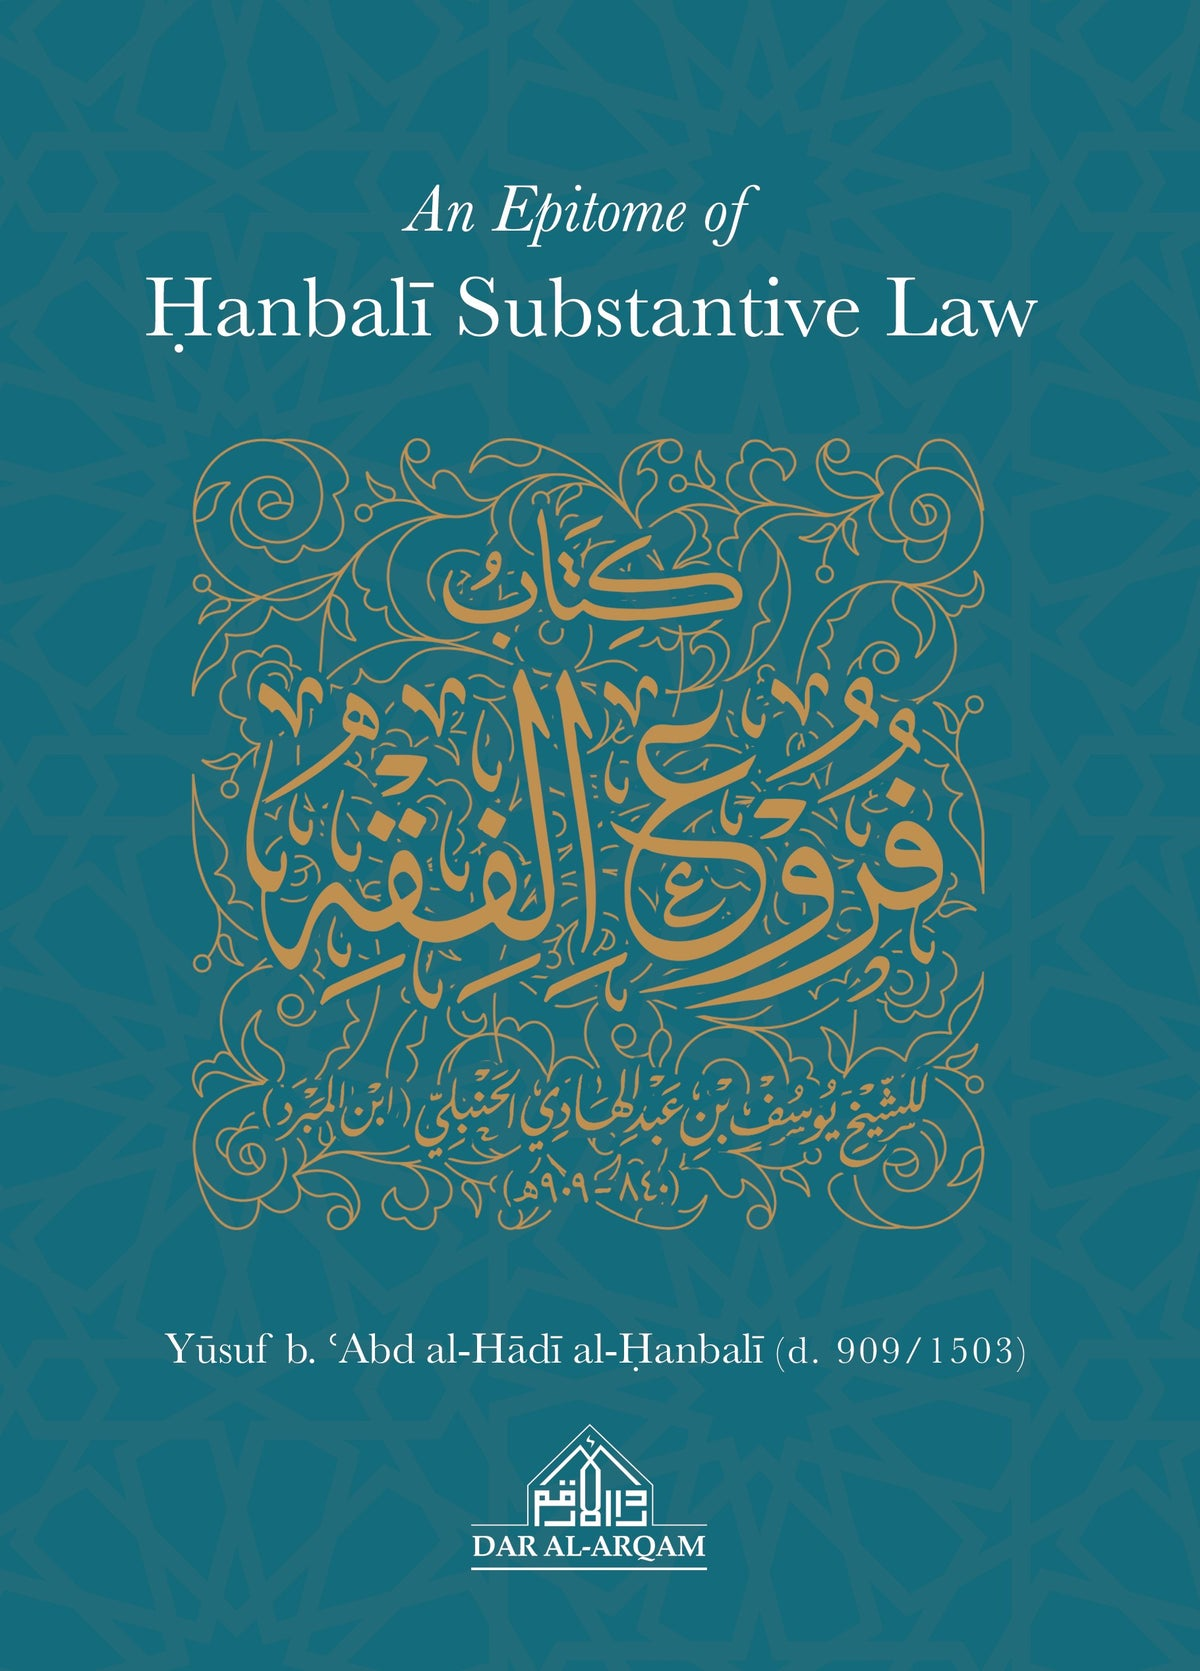 Image of An Epitome of Hanbali Substantive Law by Ibn 'Abd al-Hadi